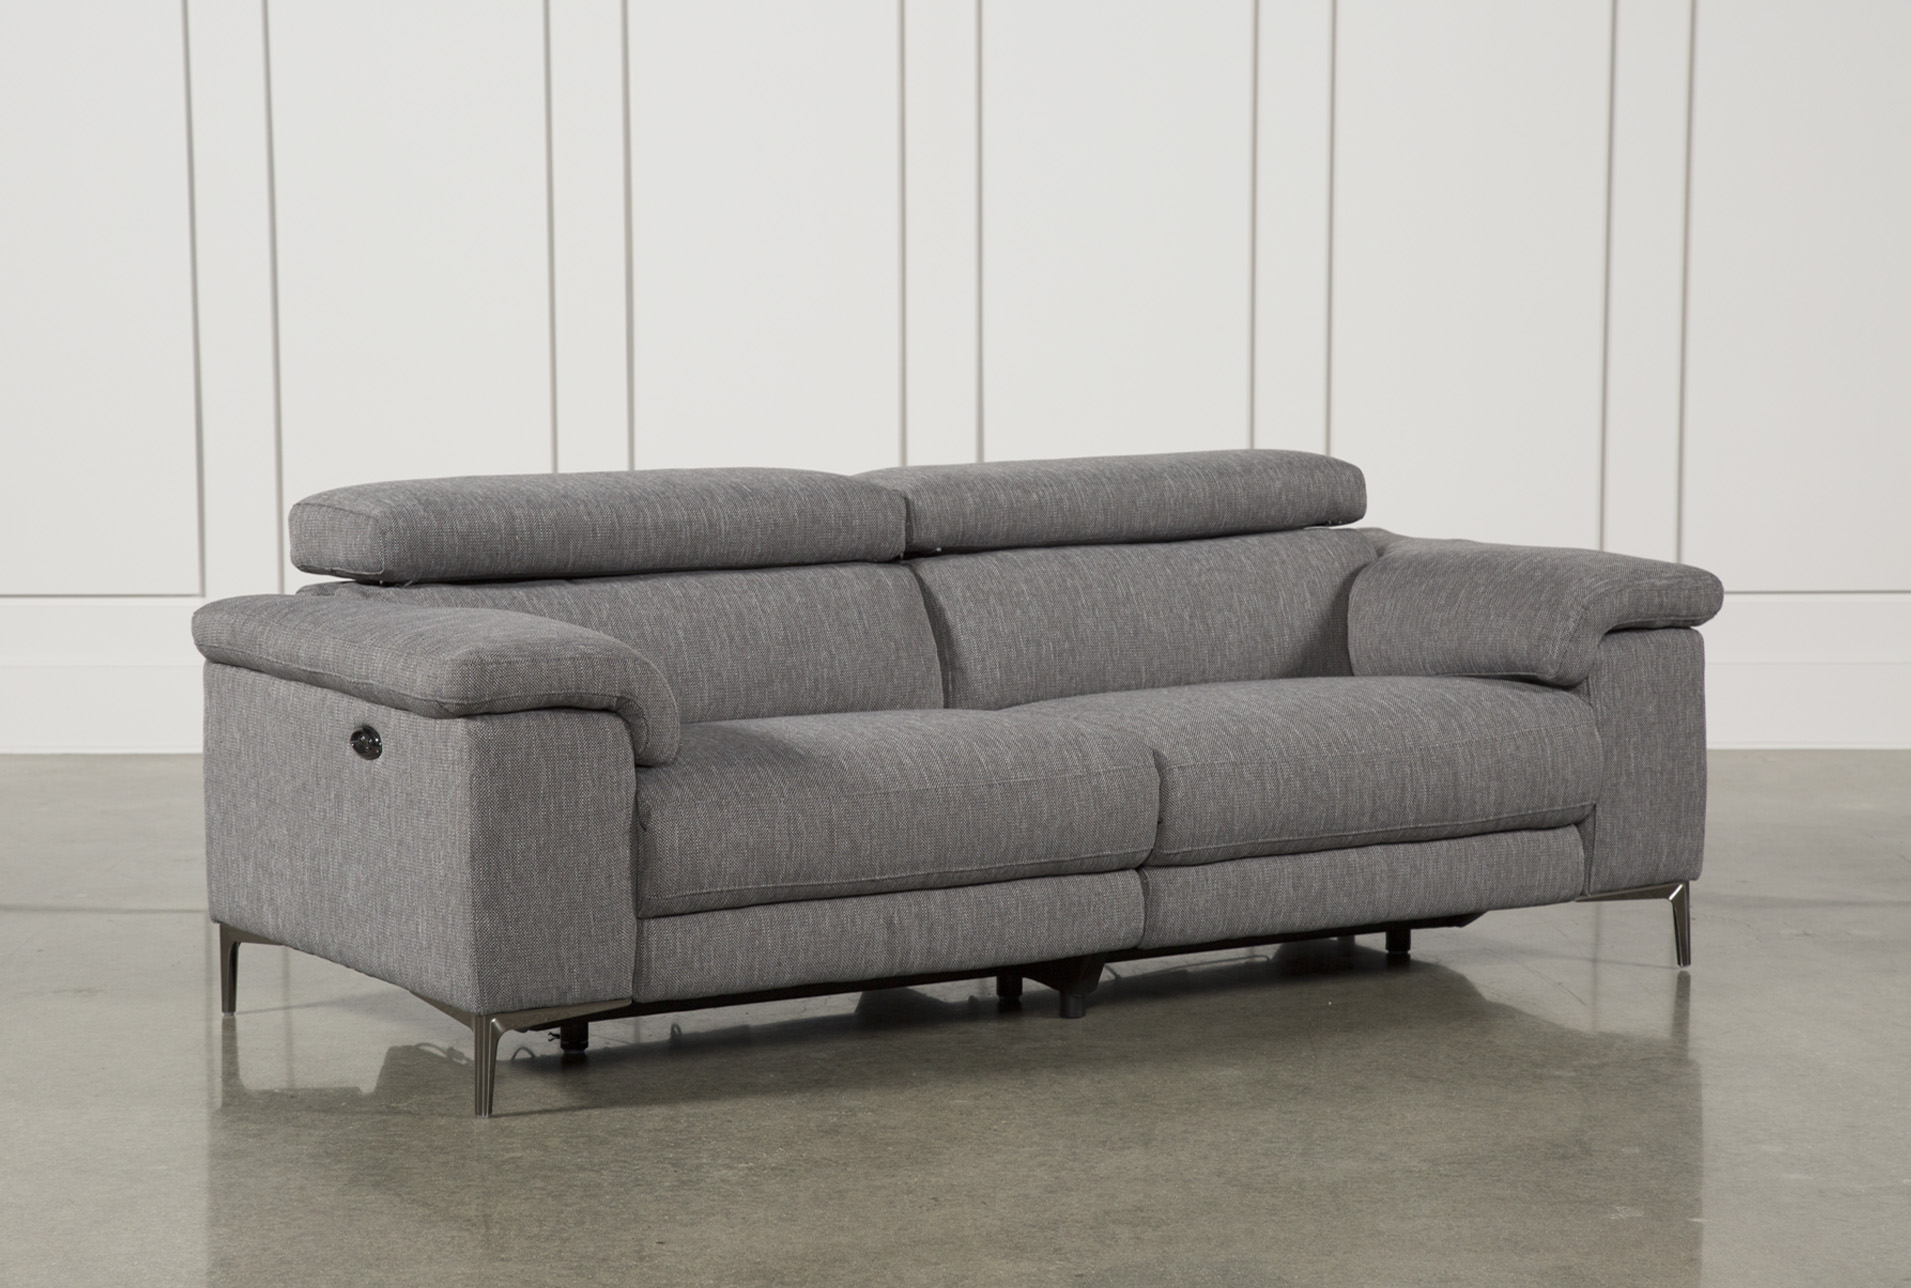 Modern couch Grey Living Spaces Talin Grey Power Reclining Sofa Wusb Living Spaces